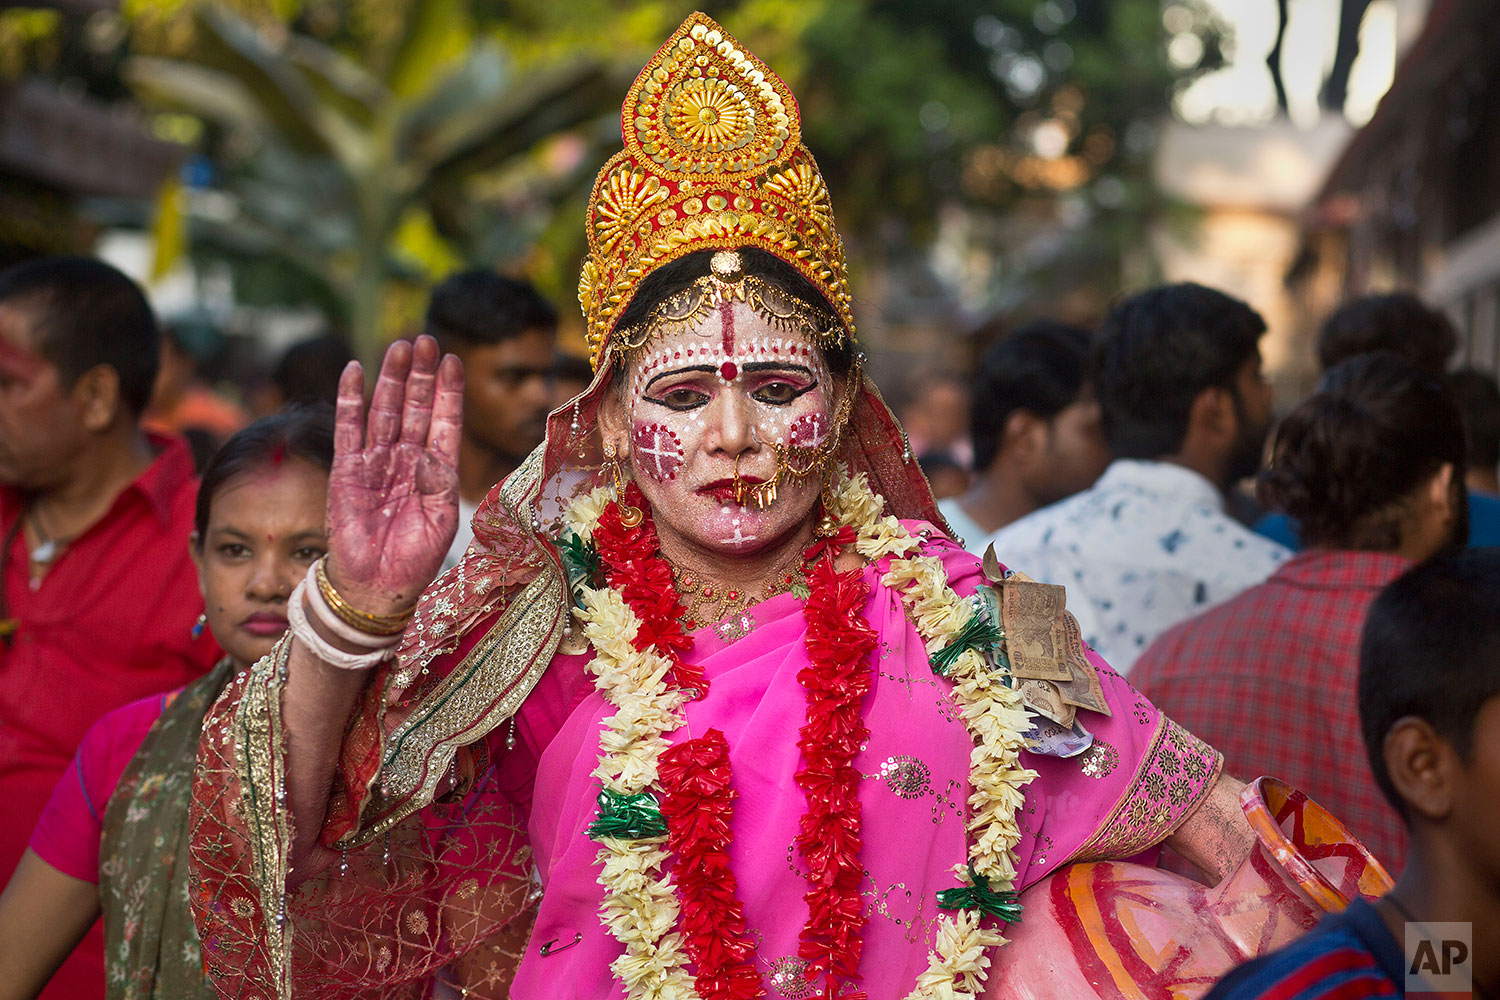 a devotee dressed as goddess Kamakhya attends the Ambubachi festival at the Kamakhya temple in Gauhati, India, June 25, 2019 . The temple is presided over by the goddess Kamakhya, the most important goddess of tantric worship, an esoteric form of Hinduism. The four-day Ambubachi festival is a celebration of Kamakhya's yearly menstrual cycle, and it brings hundreds of thousands of devotees to the temple. (AP Photo/Anupam Nath)